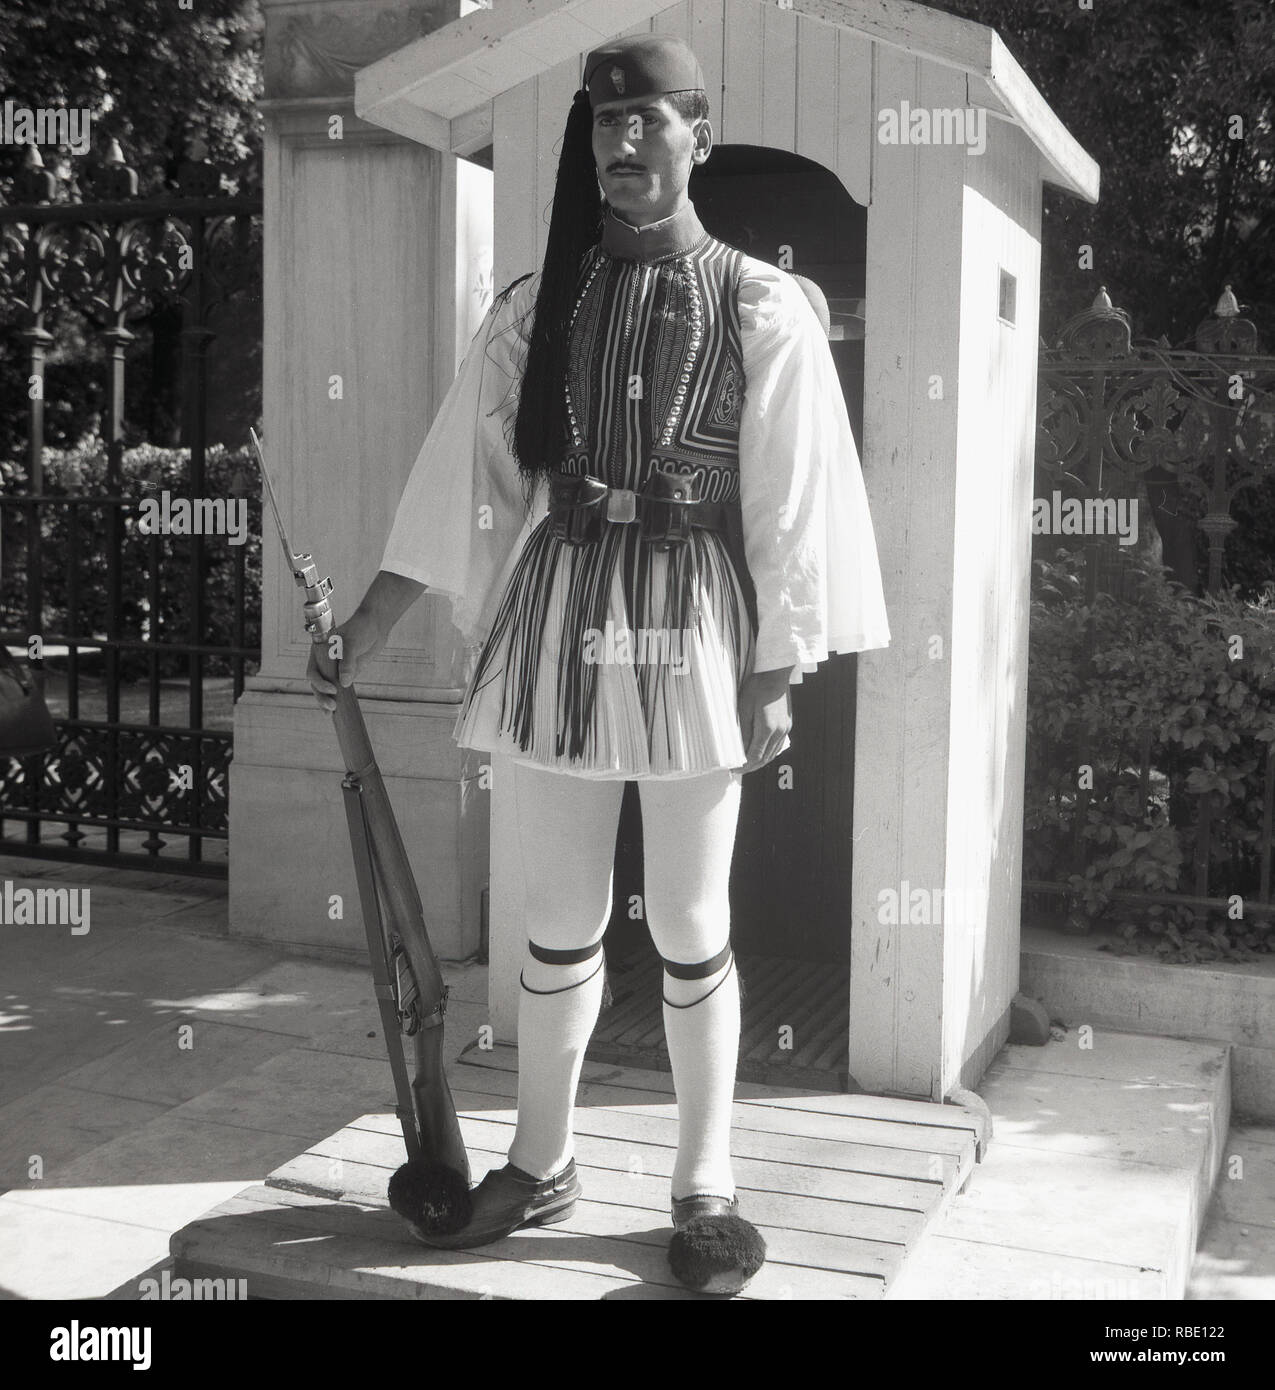 1950s, historical, Greek guard (Evzone) in full dress Uniform with rifle standing outside his sentry box, Athens, Greece. The Presidential Guard is a ceremonial infantry that guards the Tomb of the Unknown Solider and the Presidential Mansion in Athens. - Stock Image